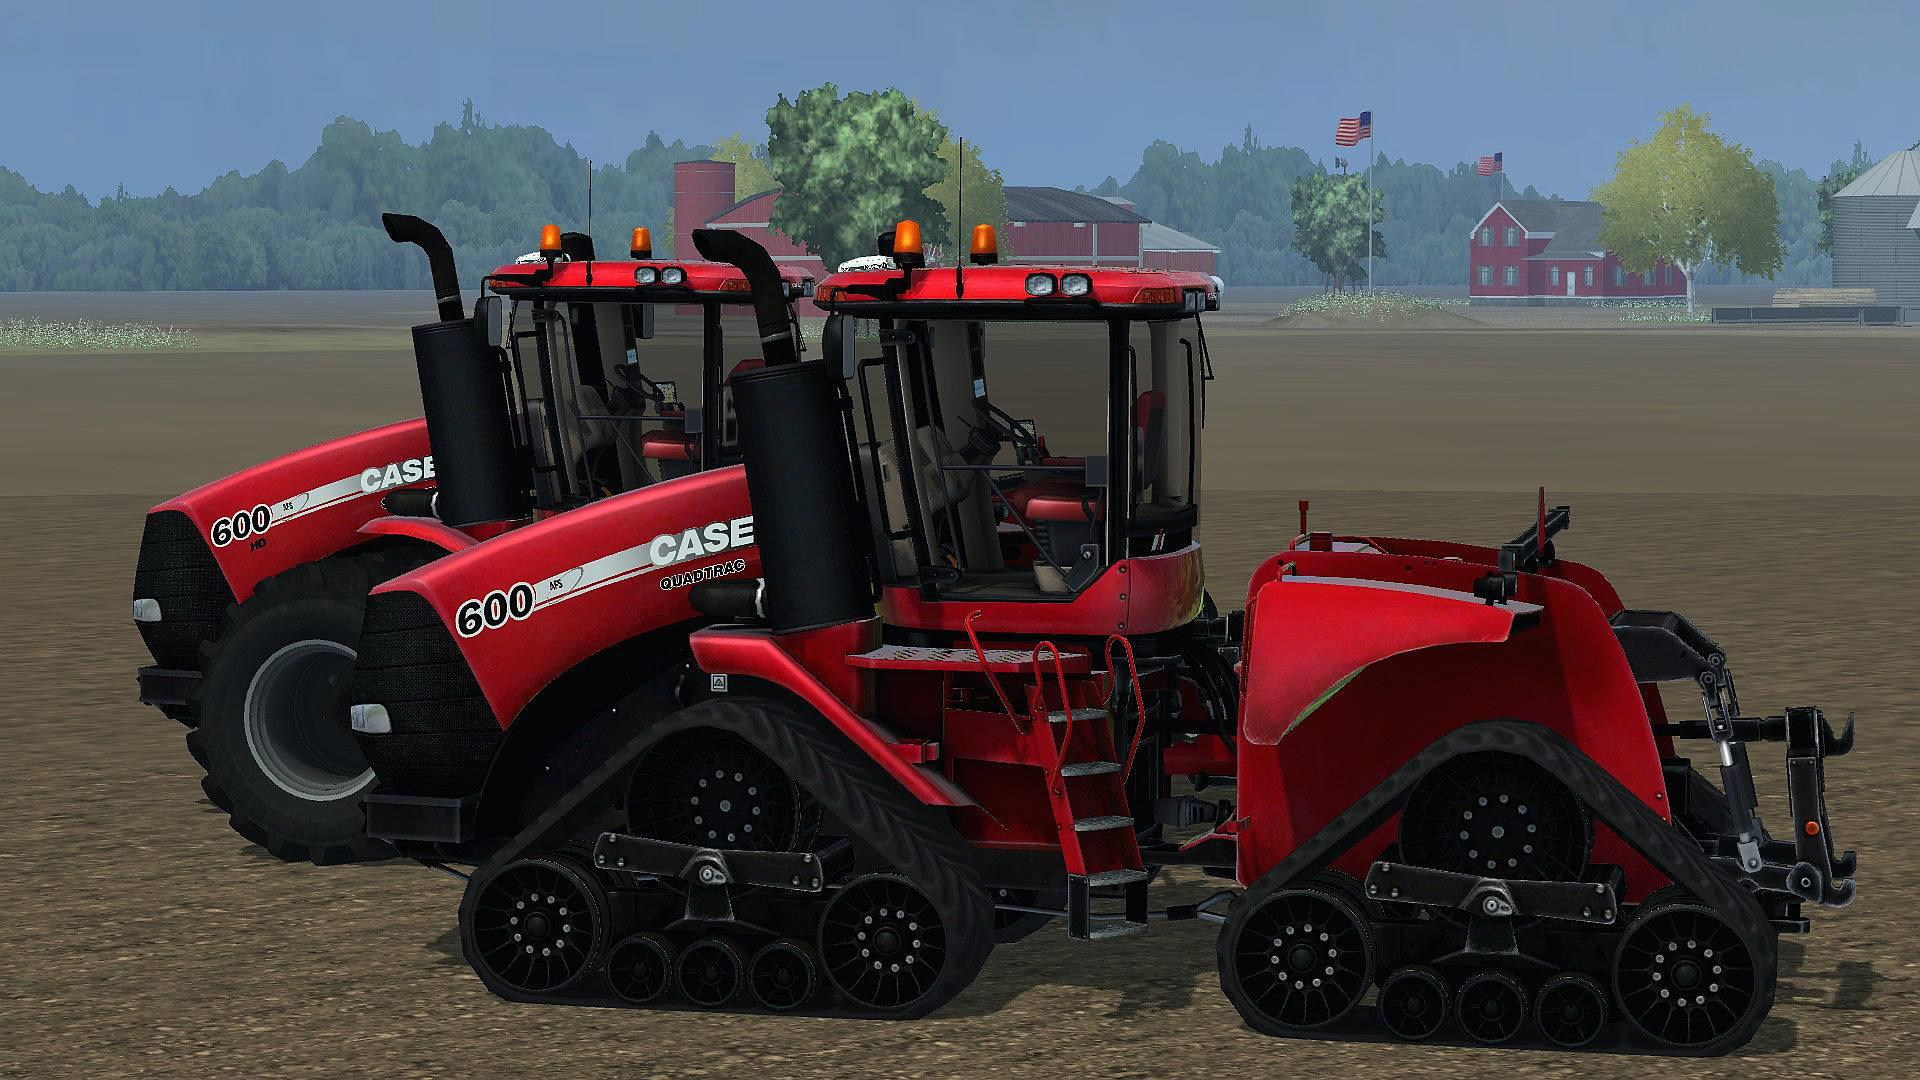 Case Tracked Tractors : Case steiger and quadtrack usa version modhub